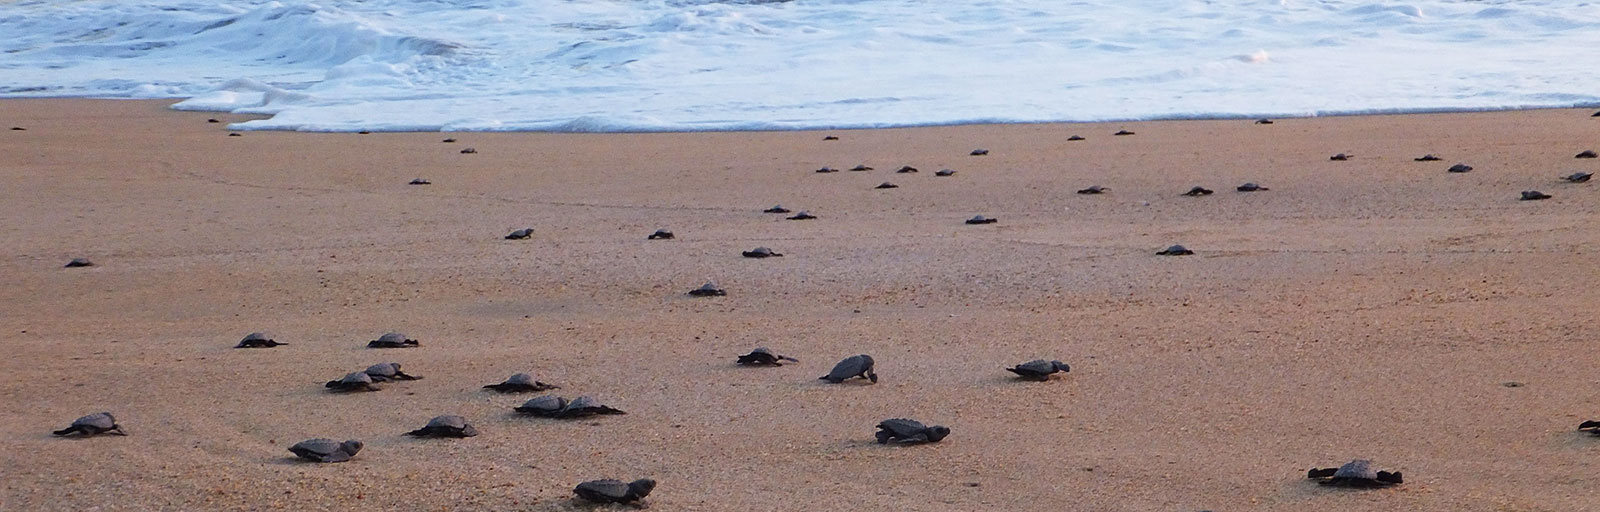 Sea Turtle Release & Mexico Yoga Retreat: Baby Turtles Scrable toward the Water